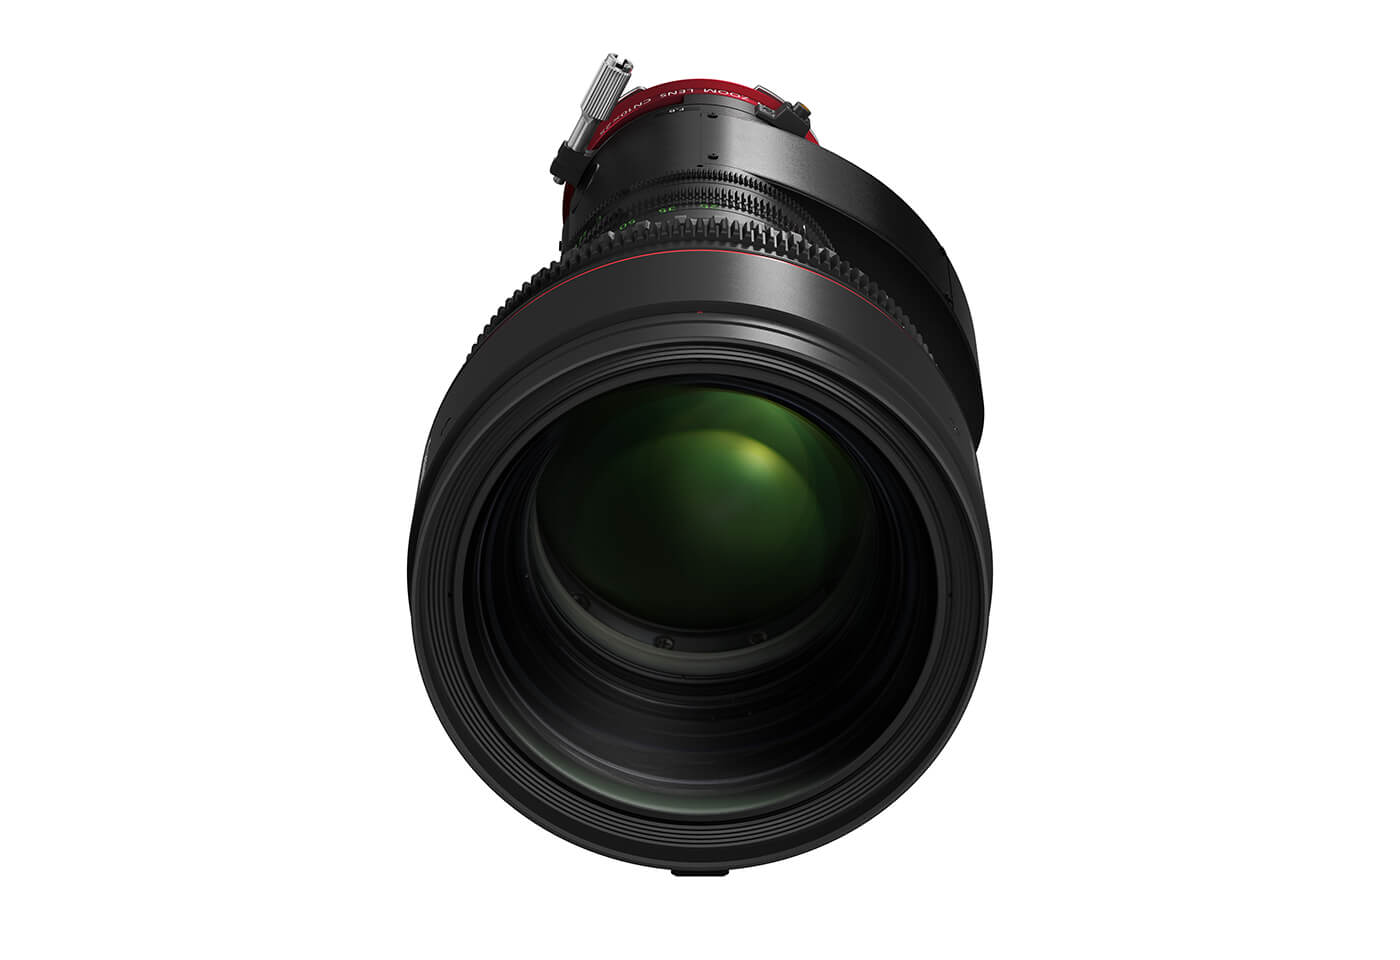 Front profile image of CN10 X 25 IAS S CINESERVO Cinema lens